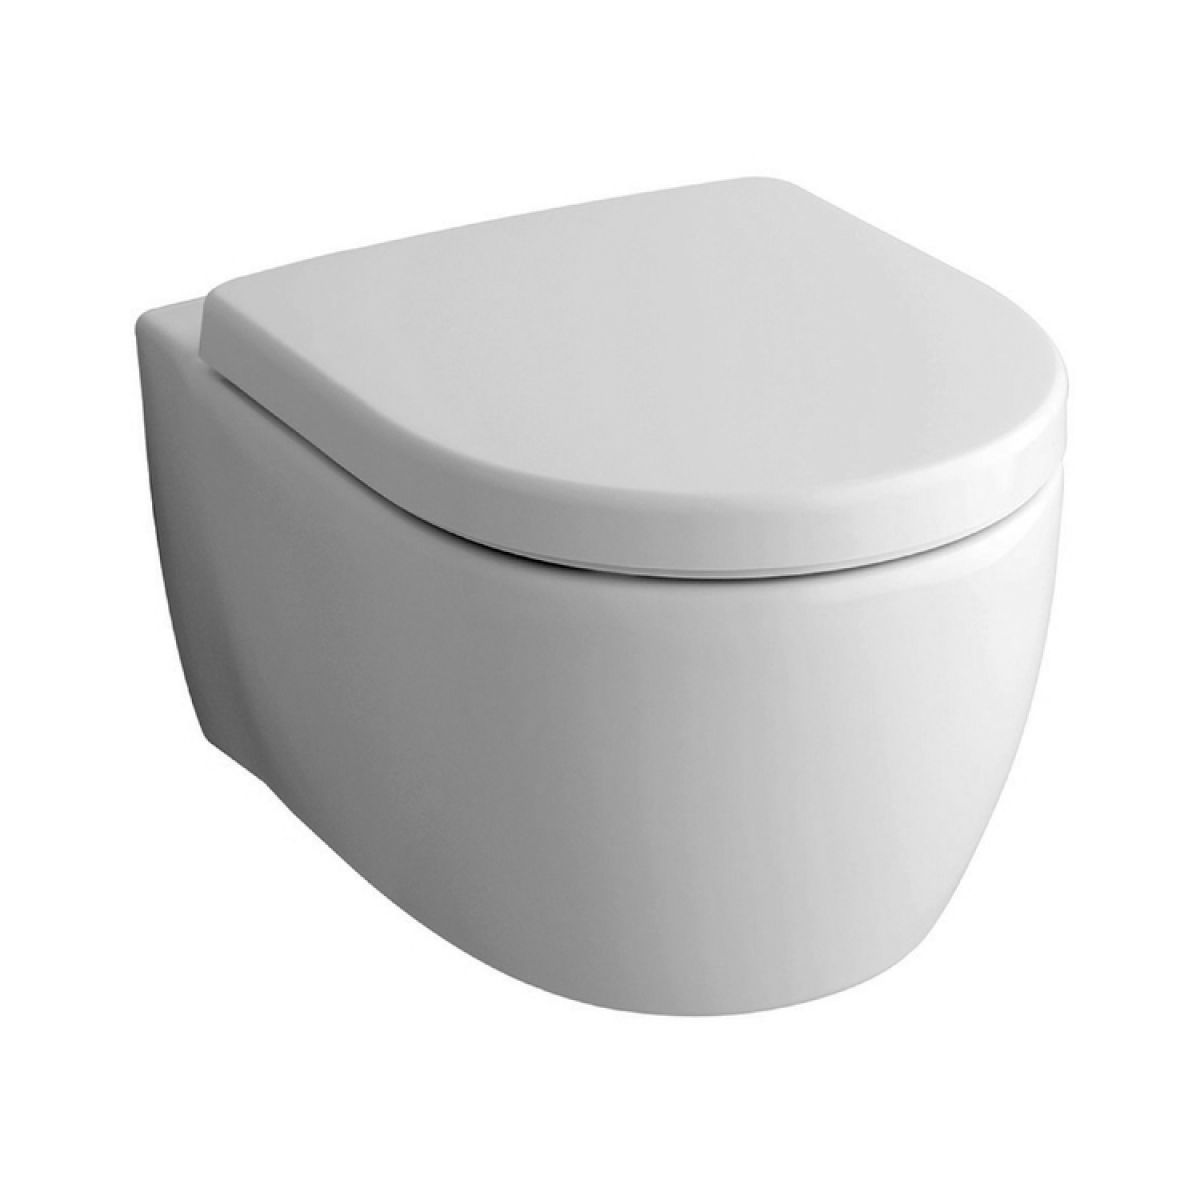 Geberit Icon Rimfree Wall Hung Toilet Uk Bathrooms